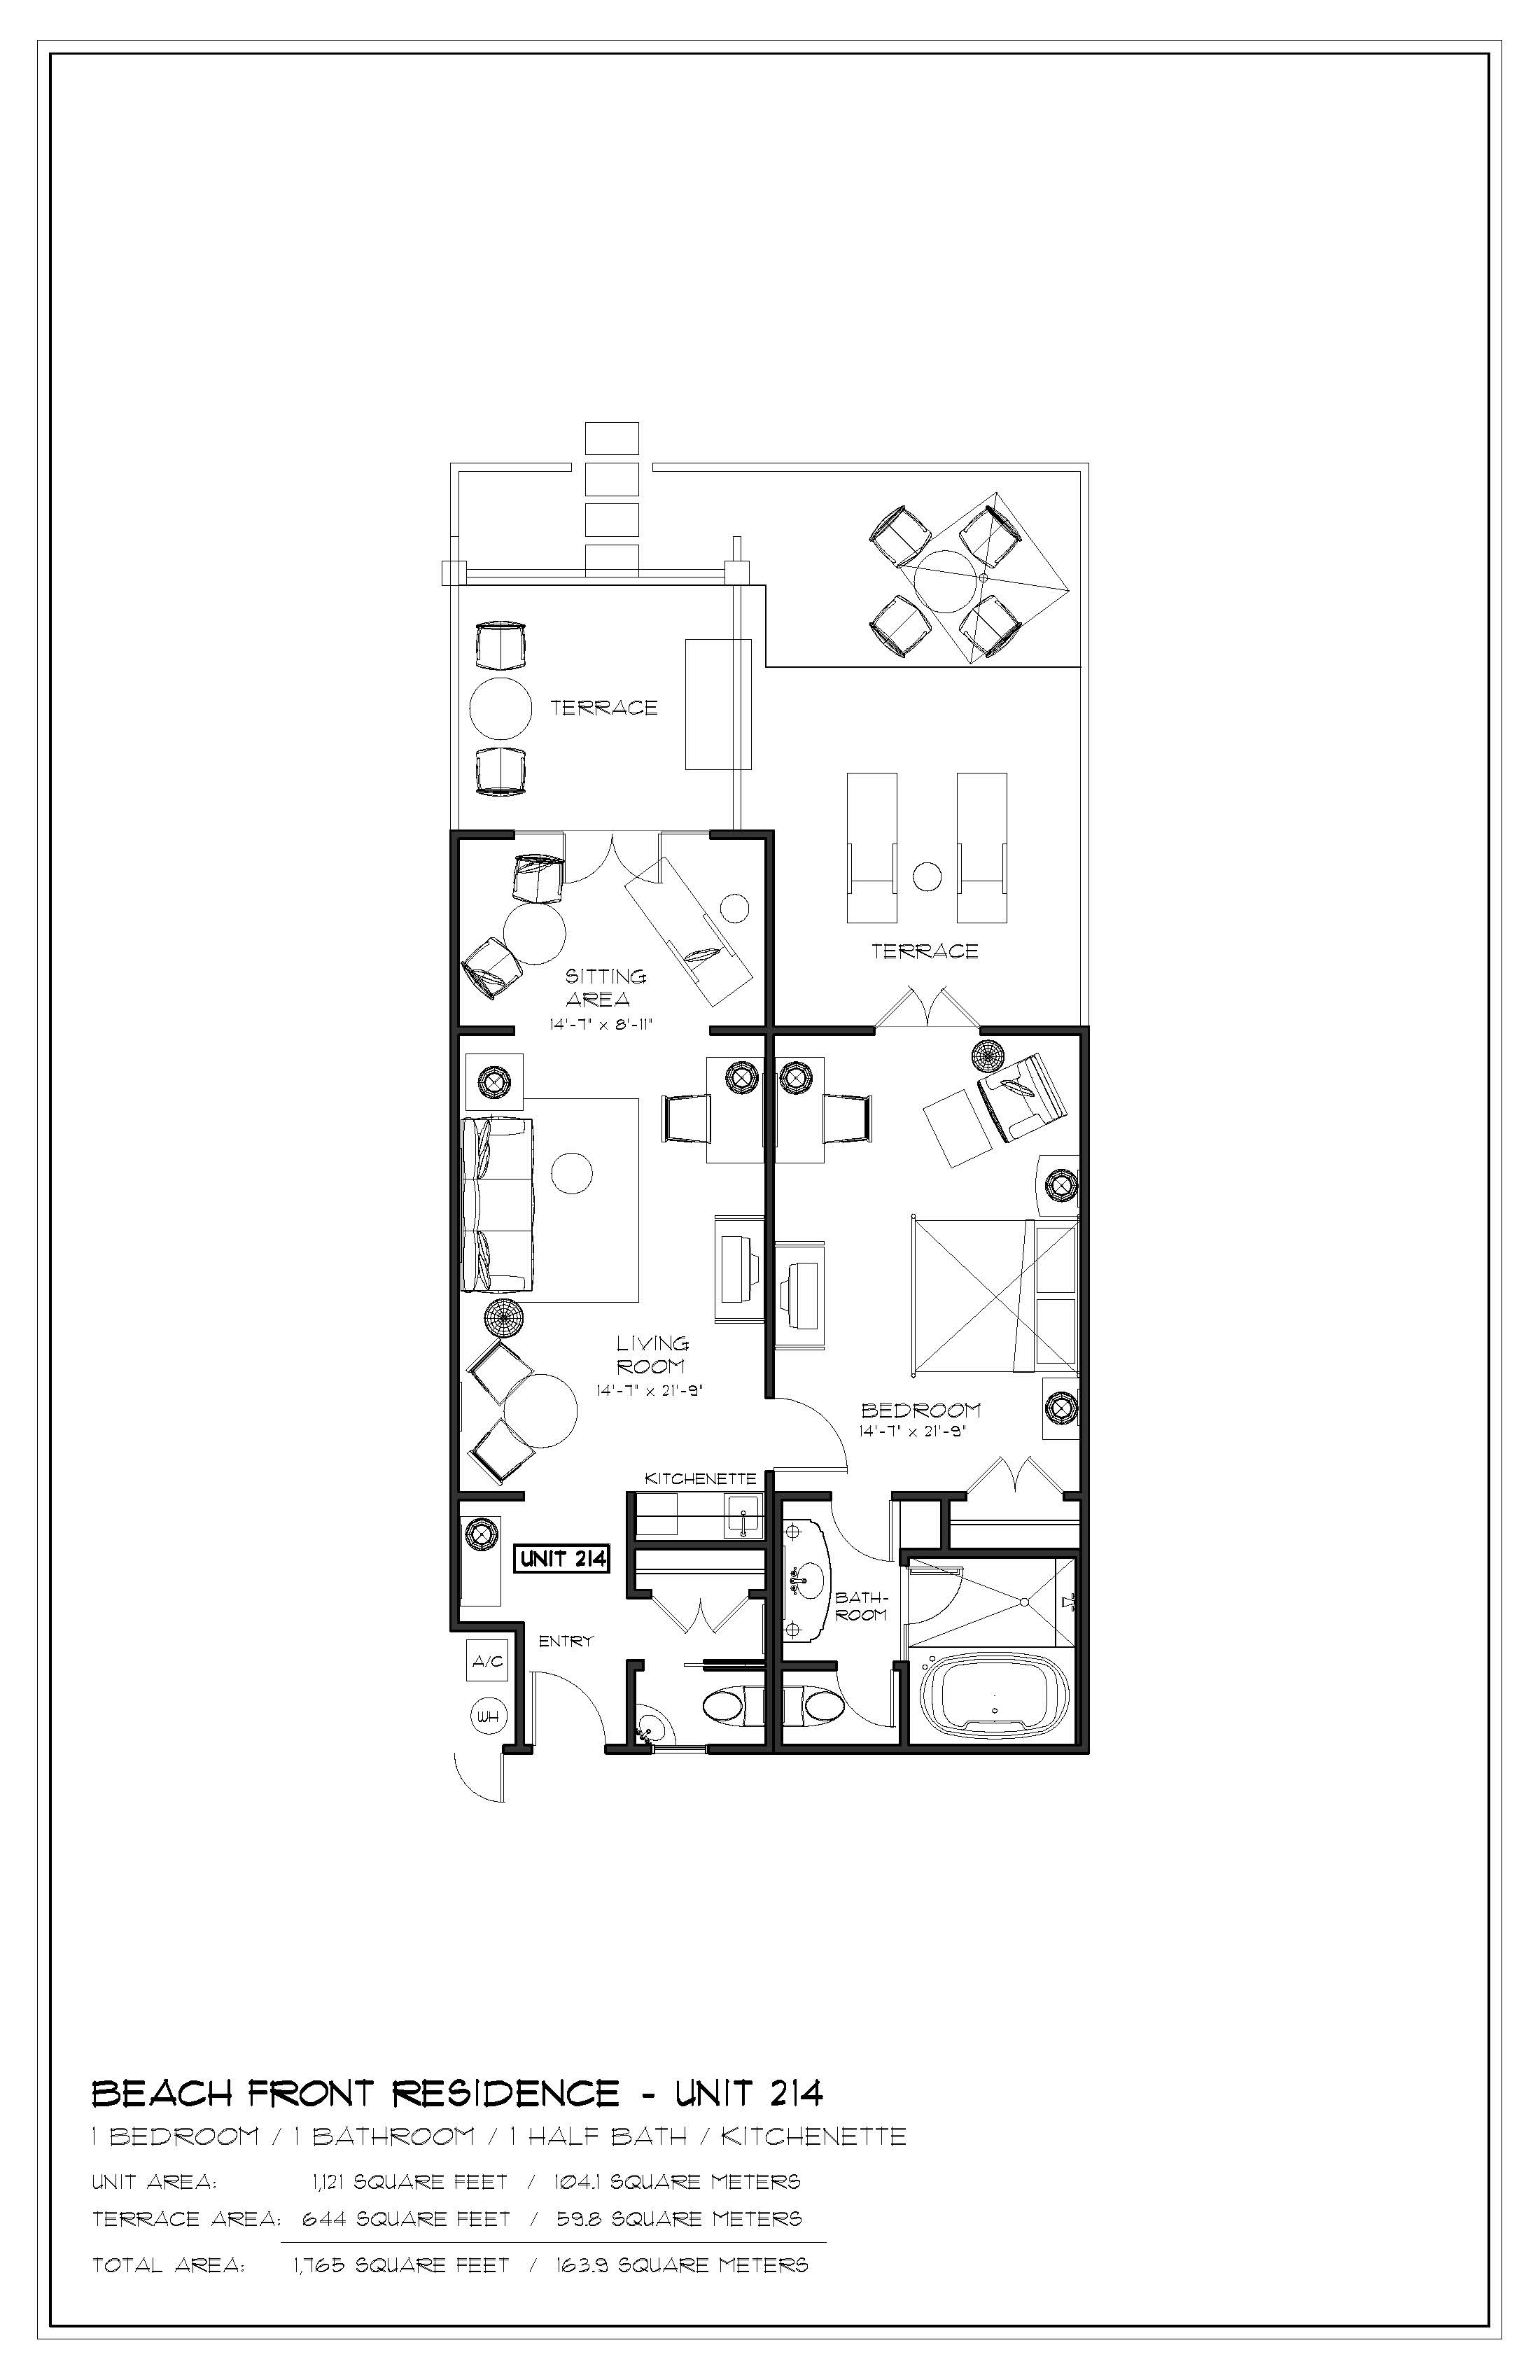 100 square feet to square meters vista suite lotus 400 square feet to square meters